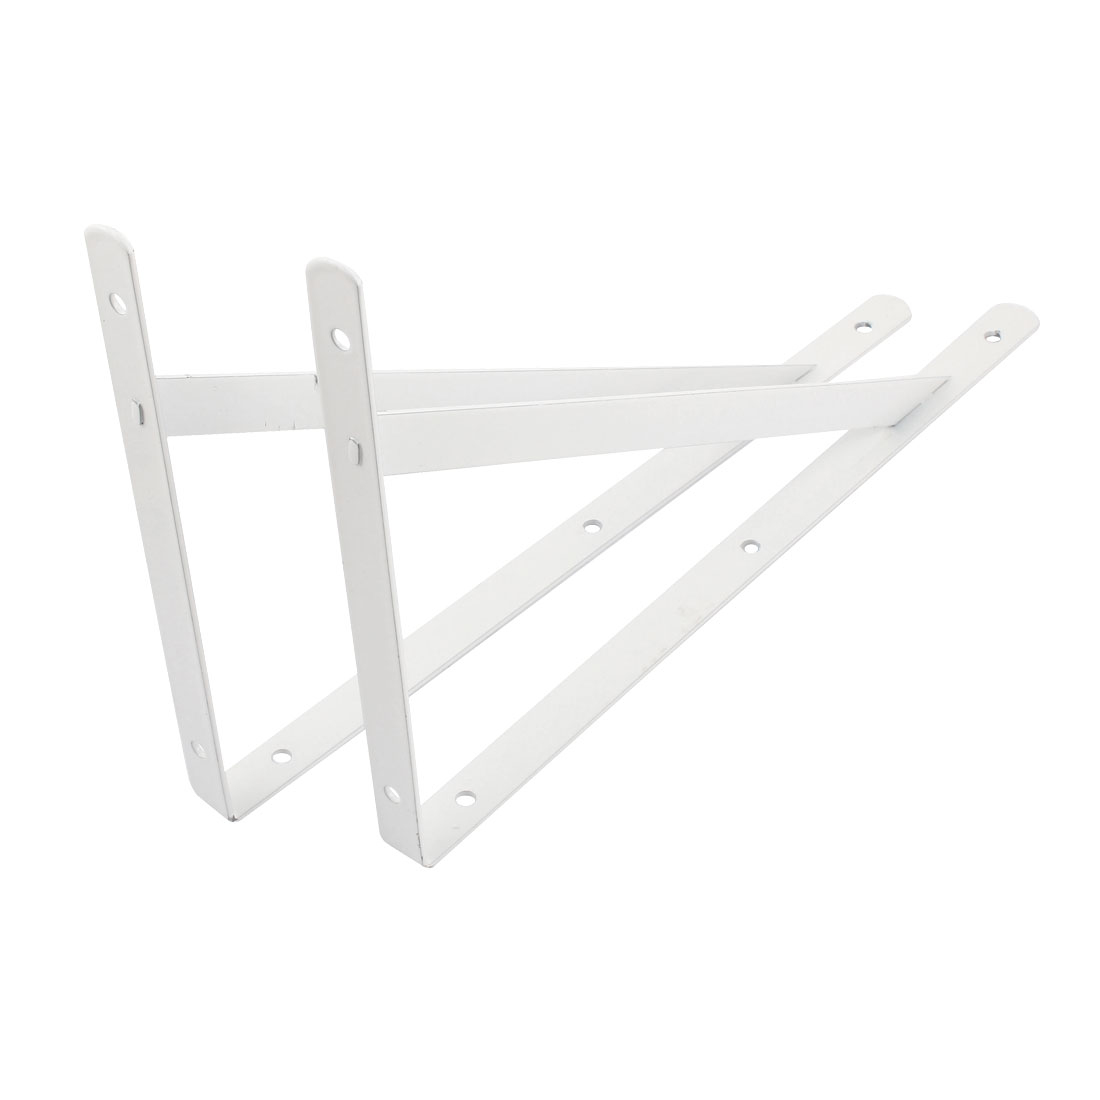 2 Pcs Triangle Wall Mount Support Shelf Bracket Frame 300mm x 190mm